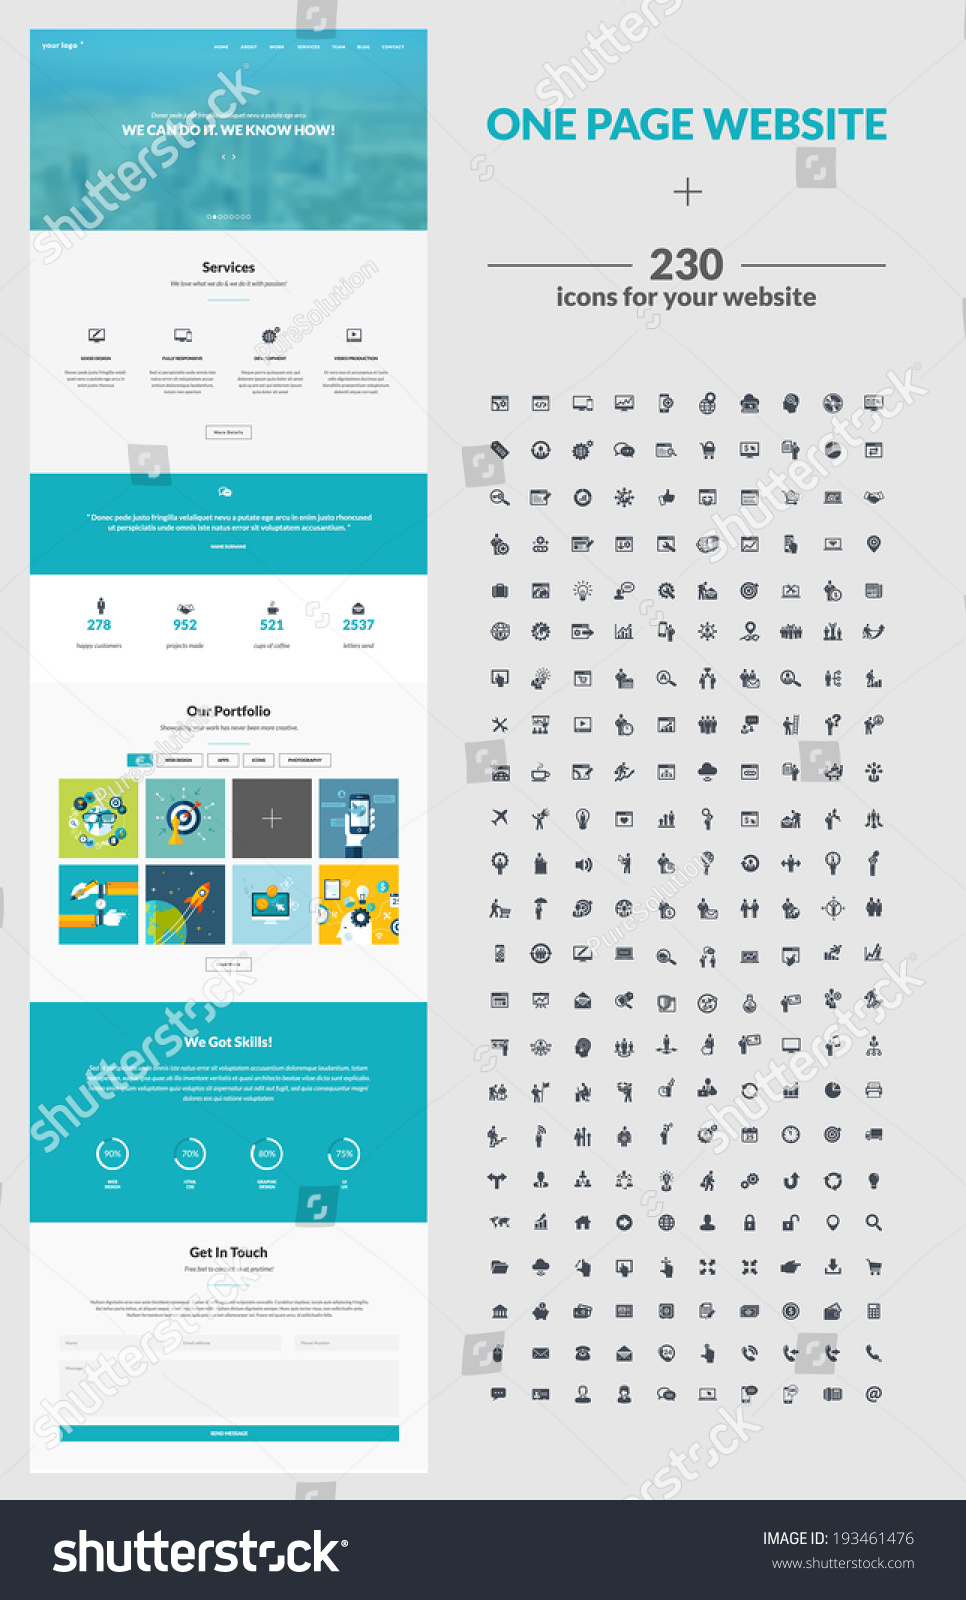 Wonderful 2 Page Resume Template Word Tiny 2014 Sample Resume Templates Rectangular 2015 Calendar Template 2015 Printable Calendar Template Youthful 3d Character Modeler Resume Dark3d Powerpoint Presentation Templates One Page Website Design Template All Stock Vector 193461476 ..